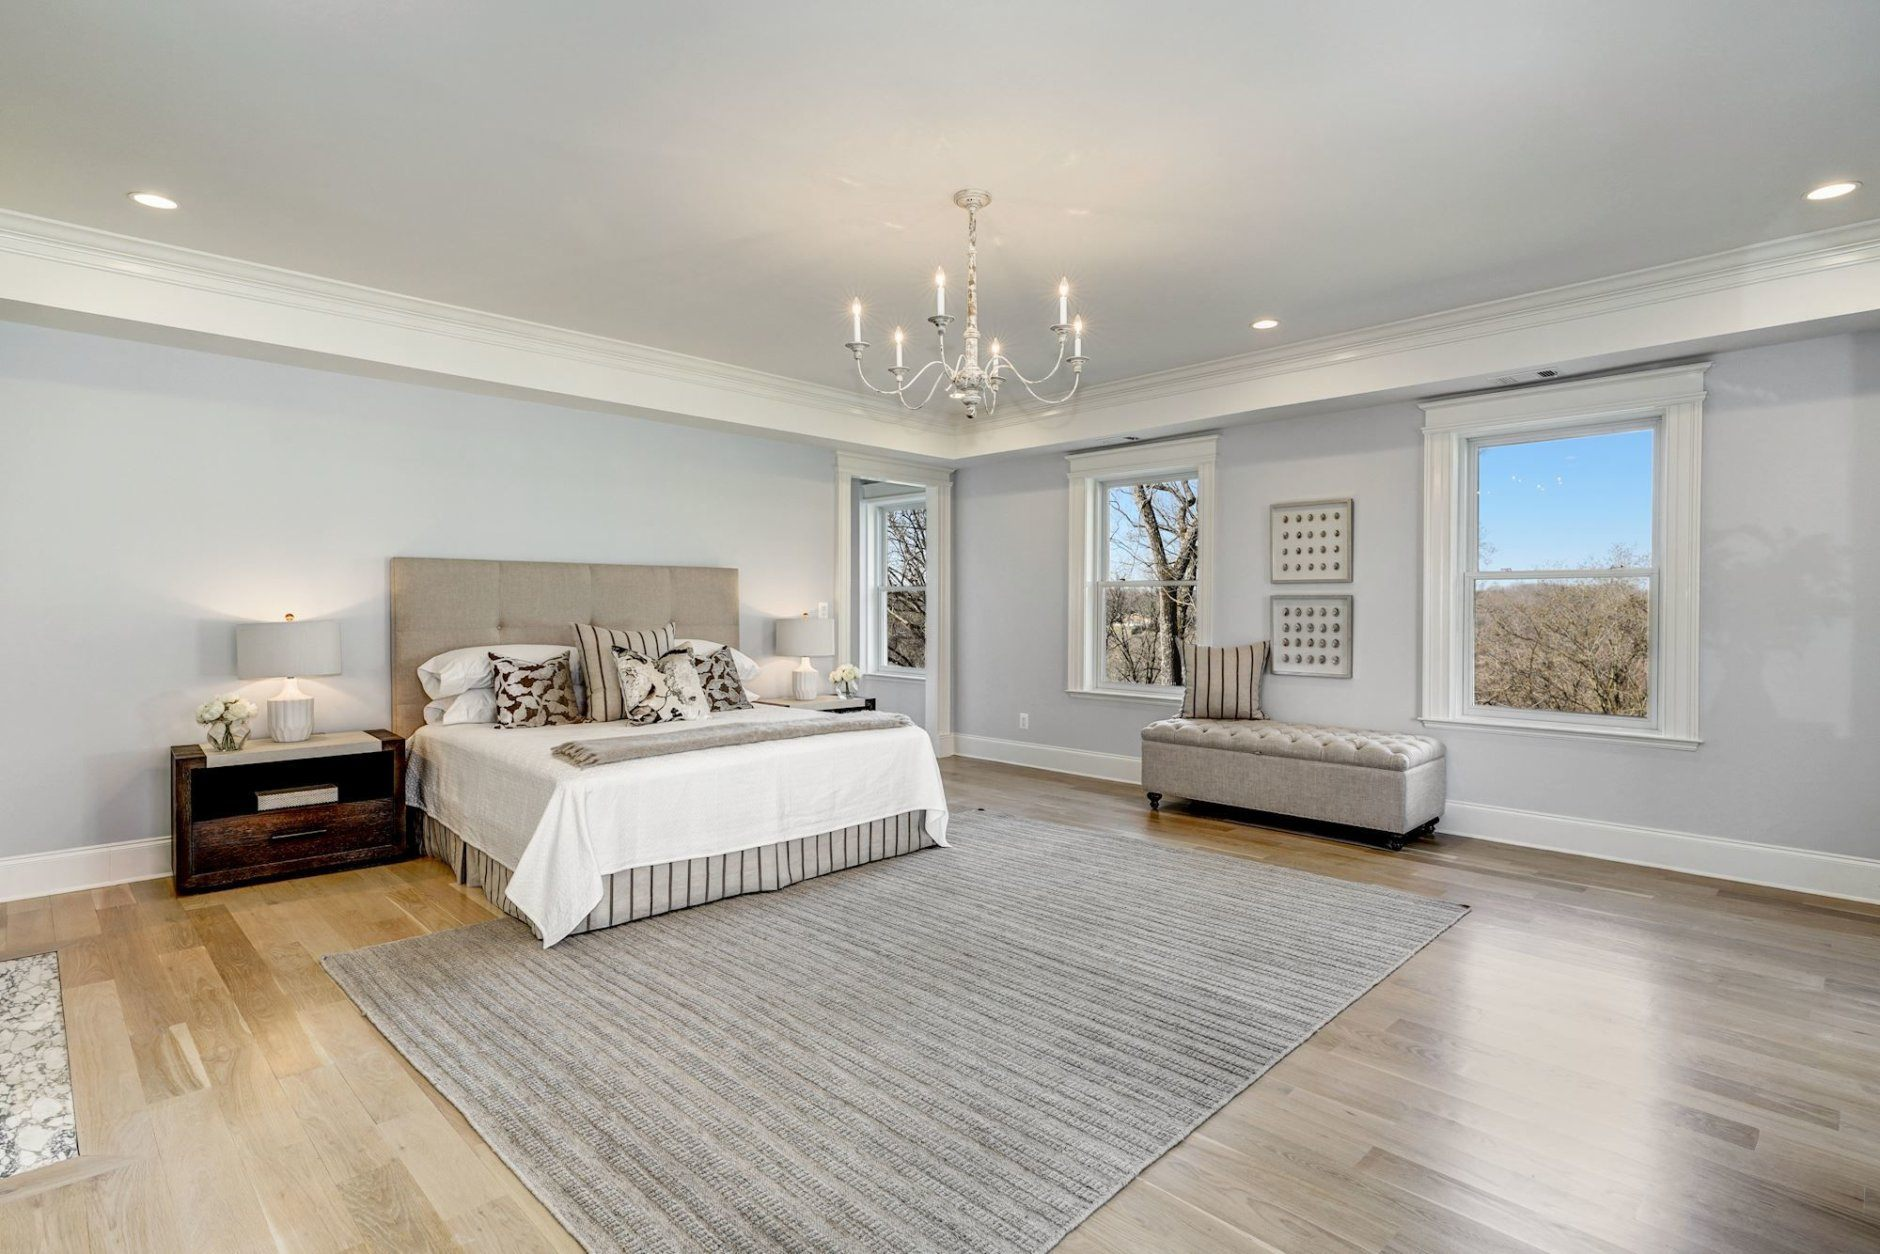 The master bedroom. (Courtesy Wydler Brothers)